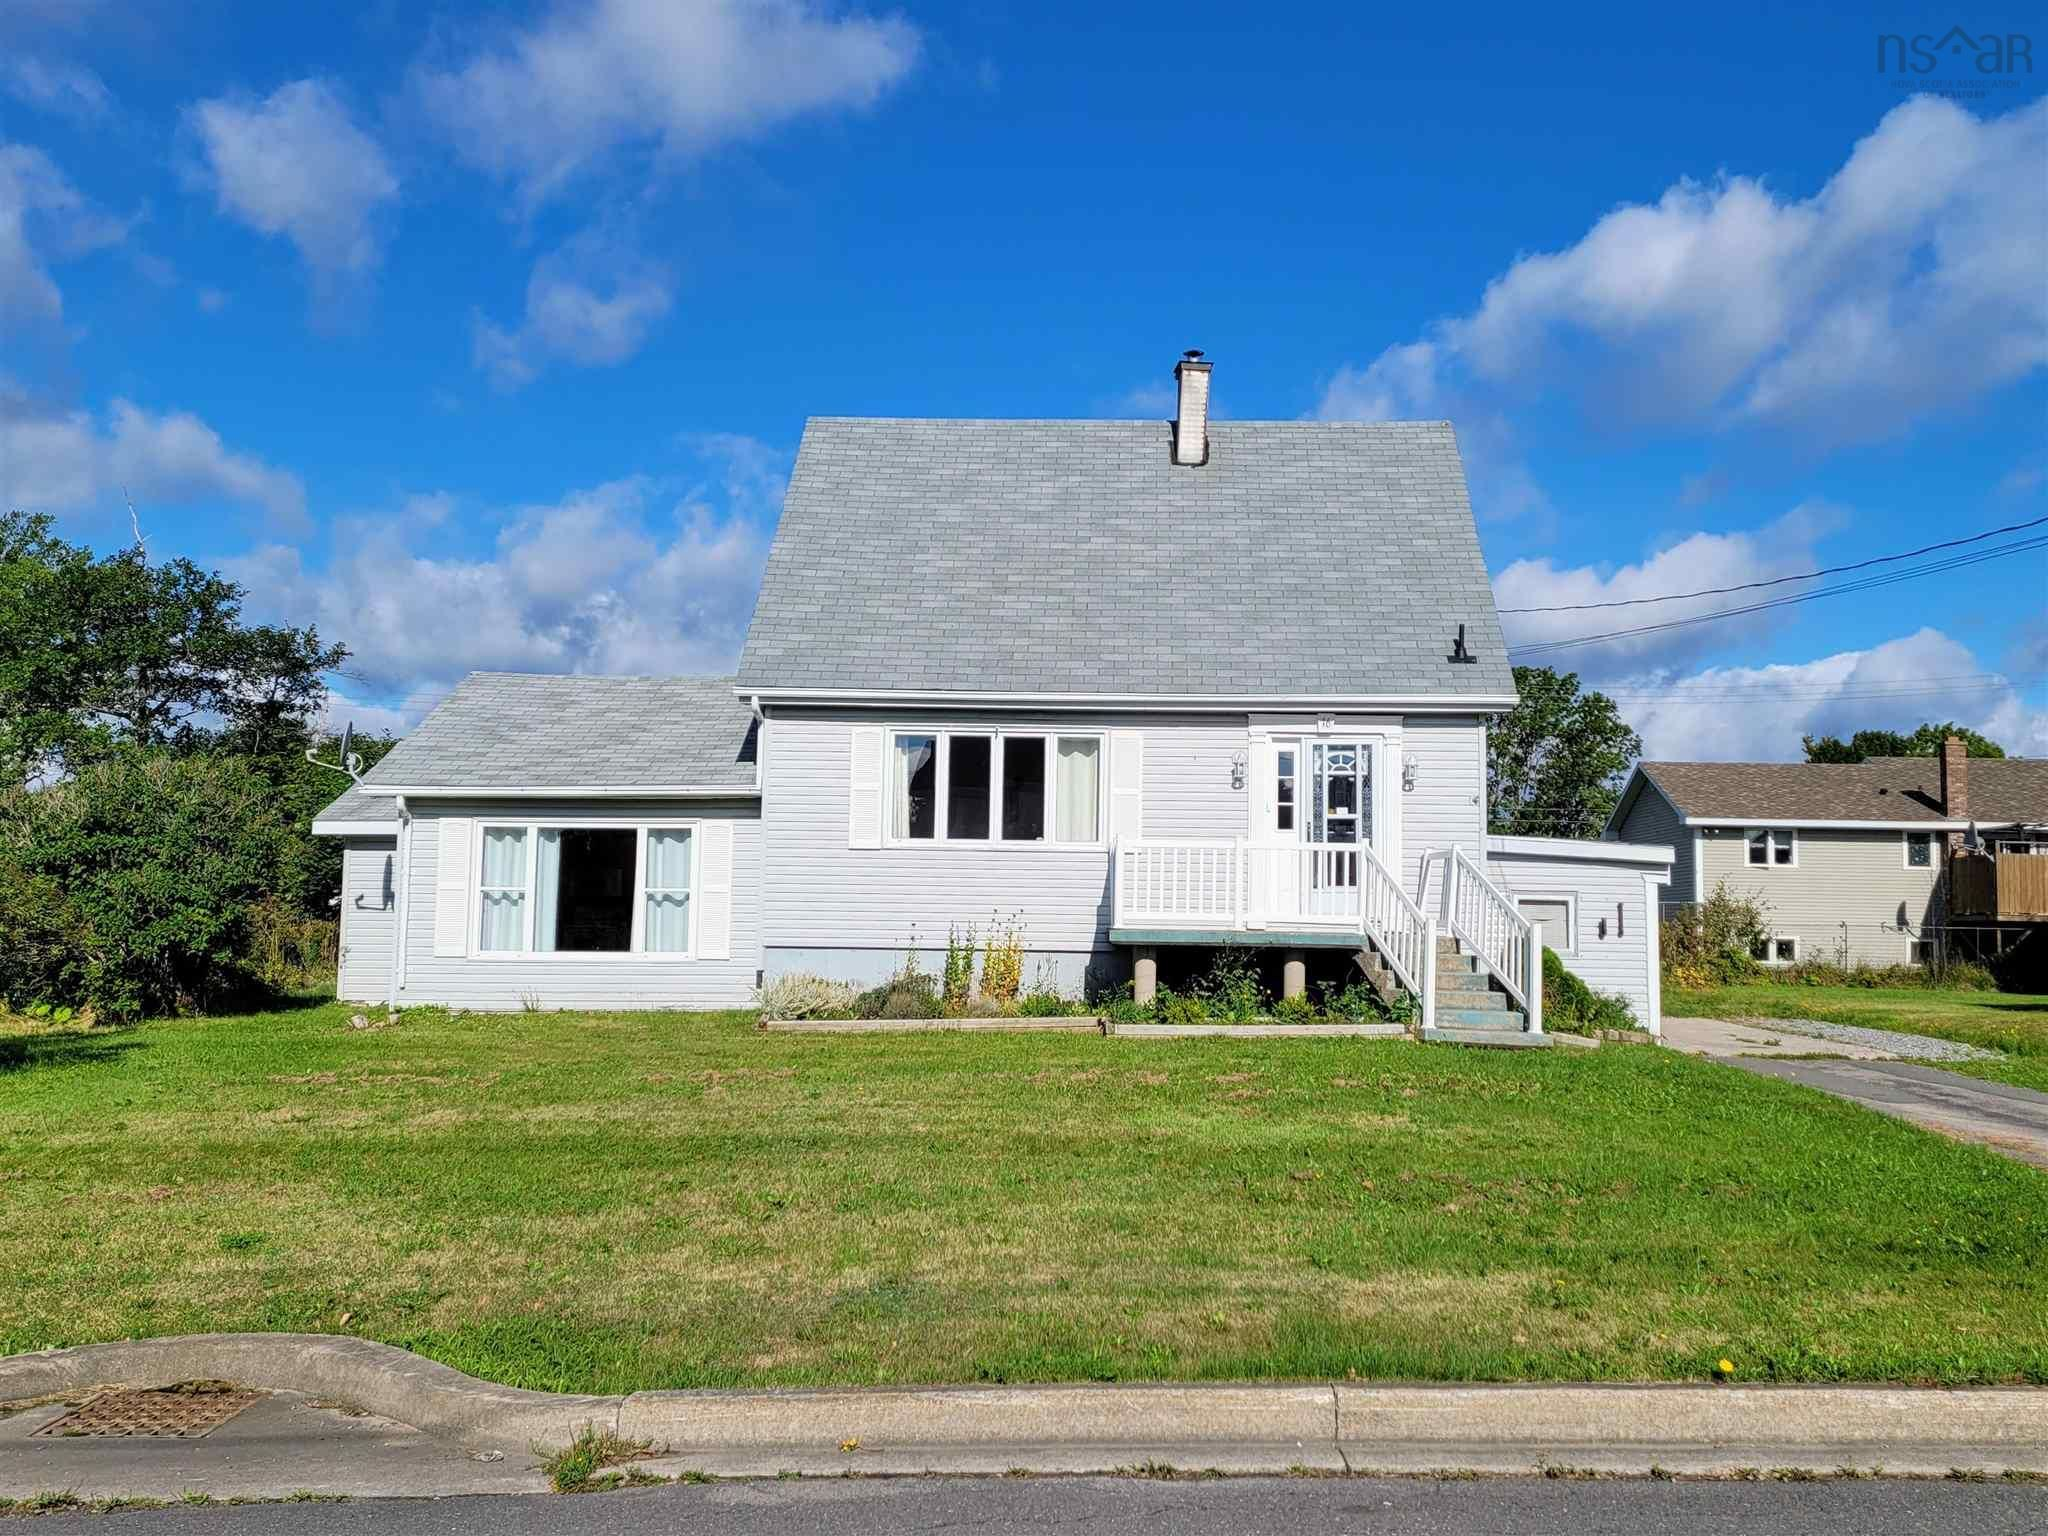 Main Photo: 16 Rosewood Avenue in Glace Bay: 203-Glace Bay Residential for sale (Cape Breton)  : MLS®# 202123398